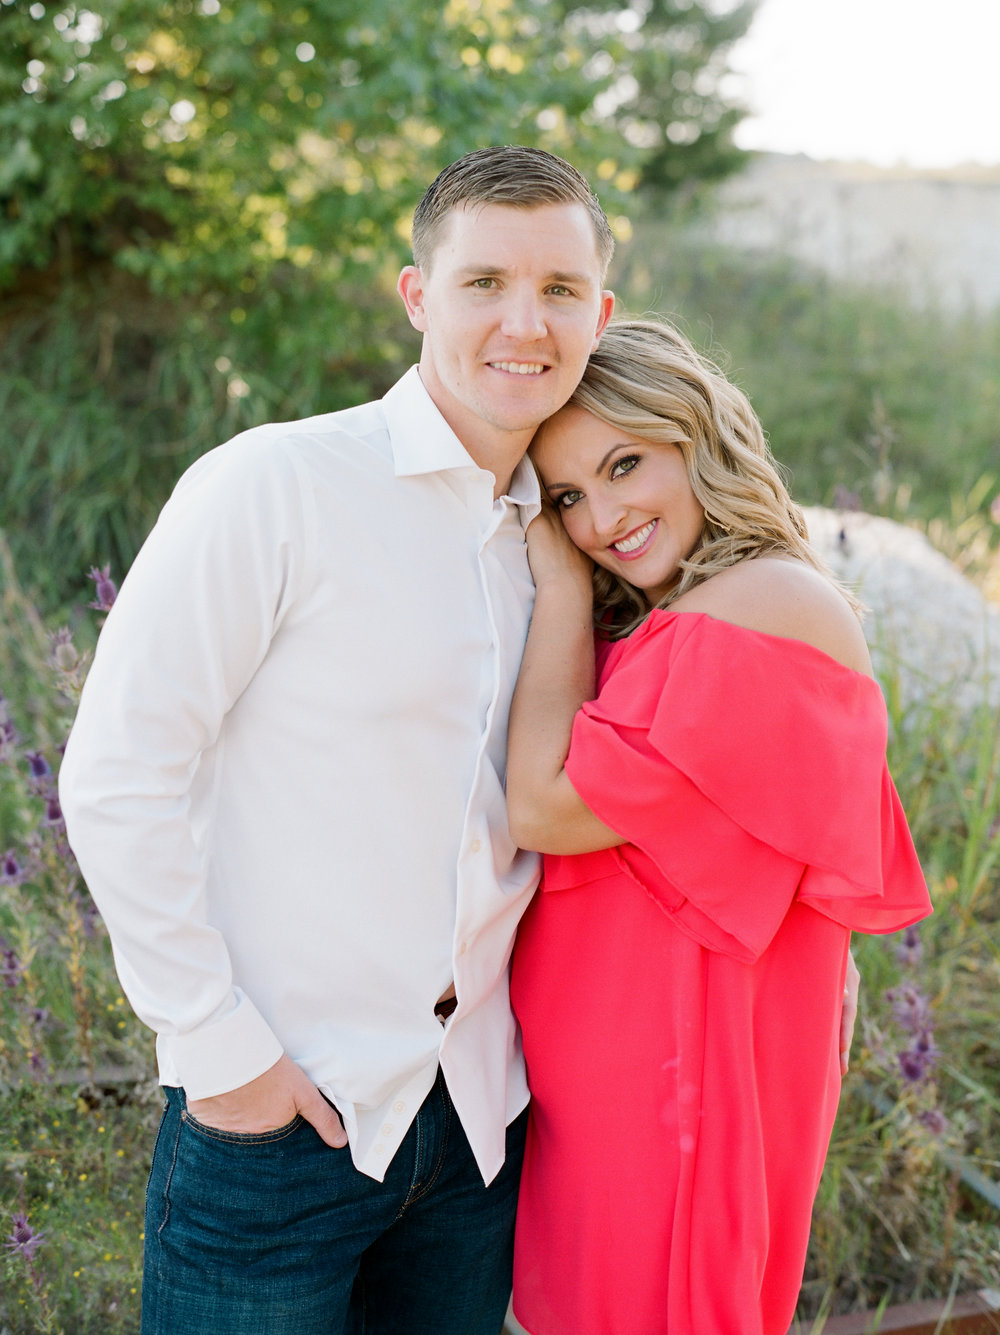 mckinney-quary-engagements-ar-photography-amanda-alex-67.jpg